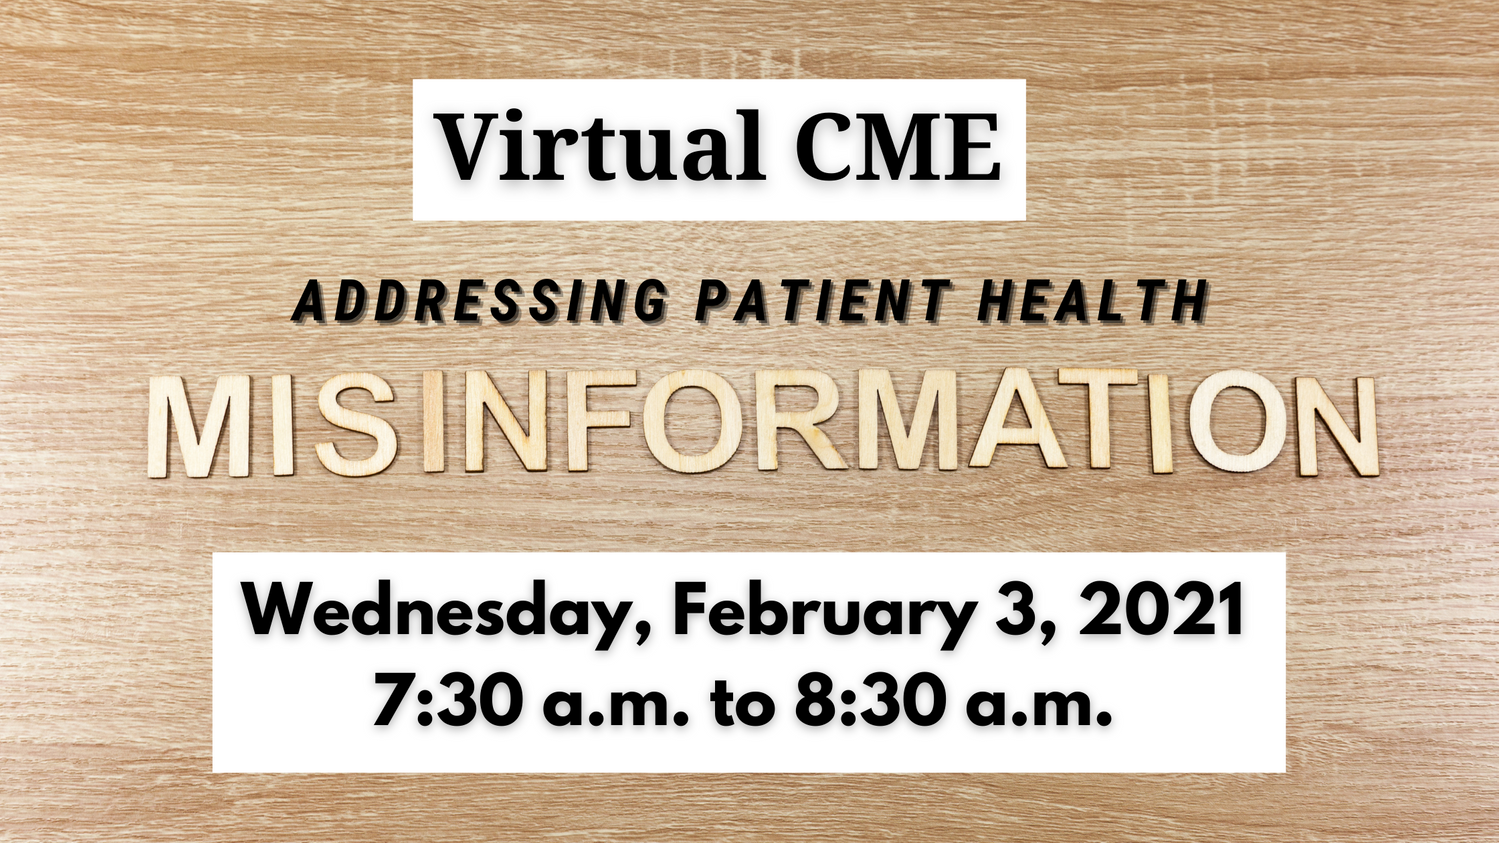 A header image with the title and time of the upcoming virtual CME